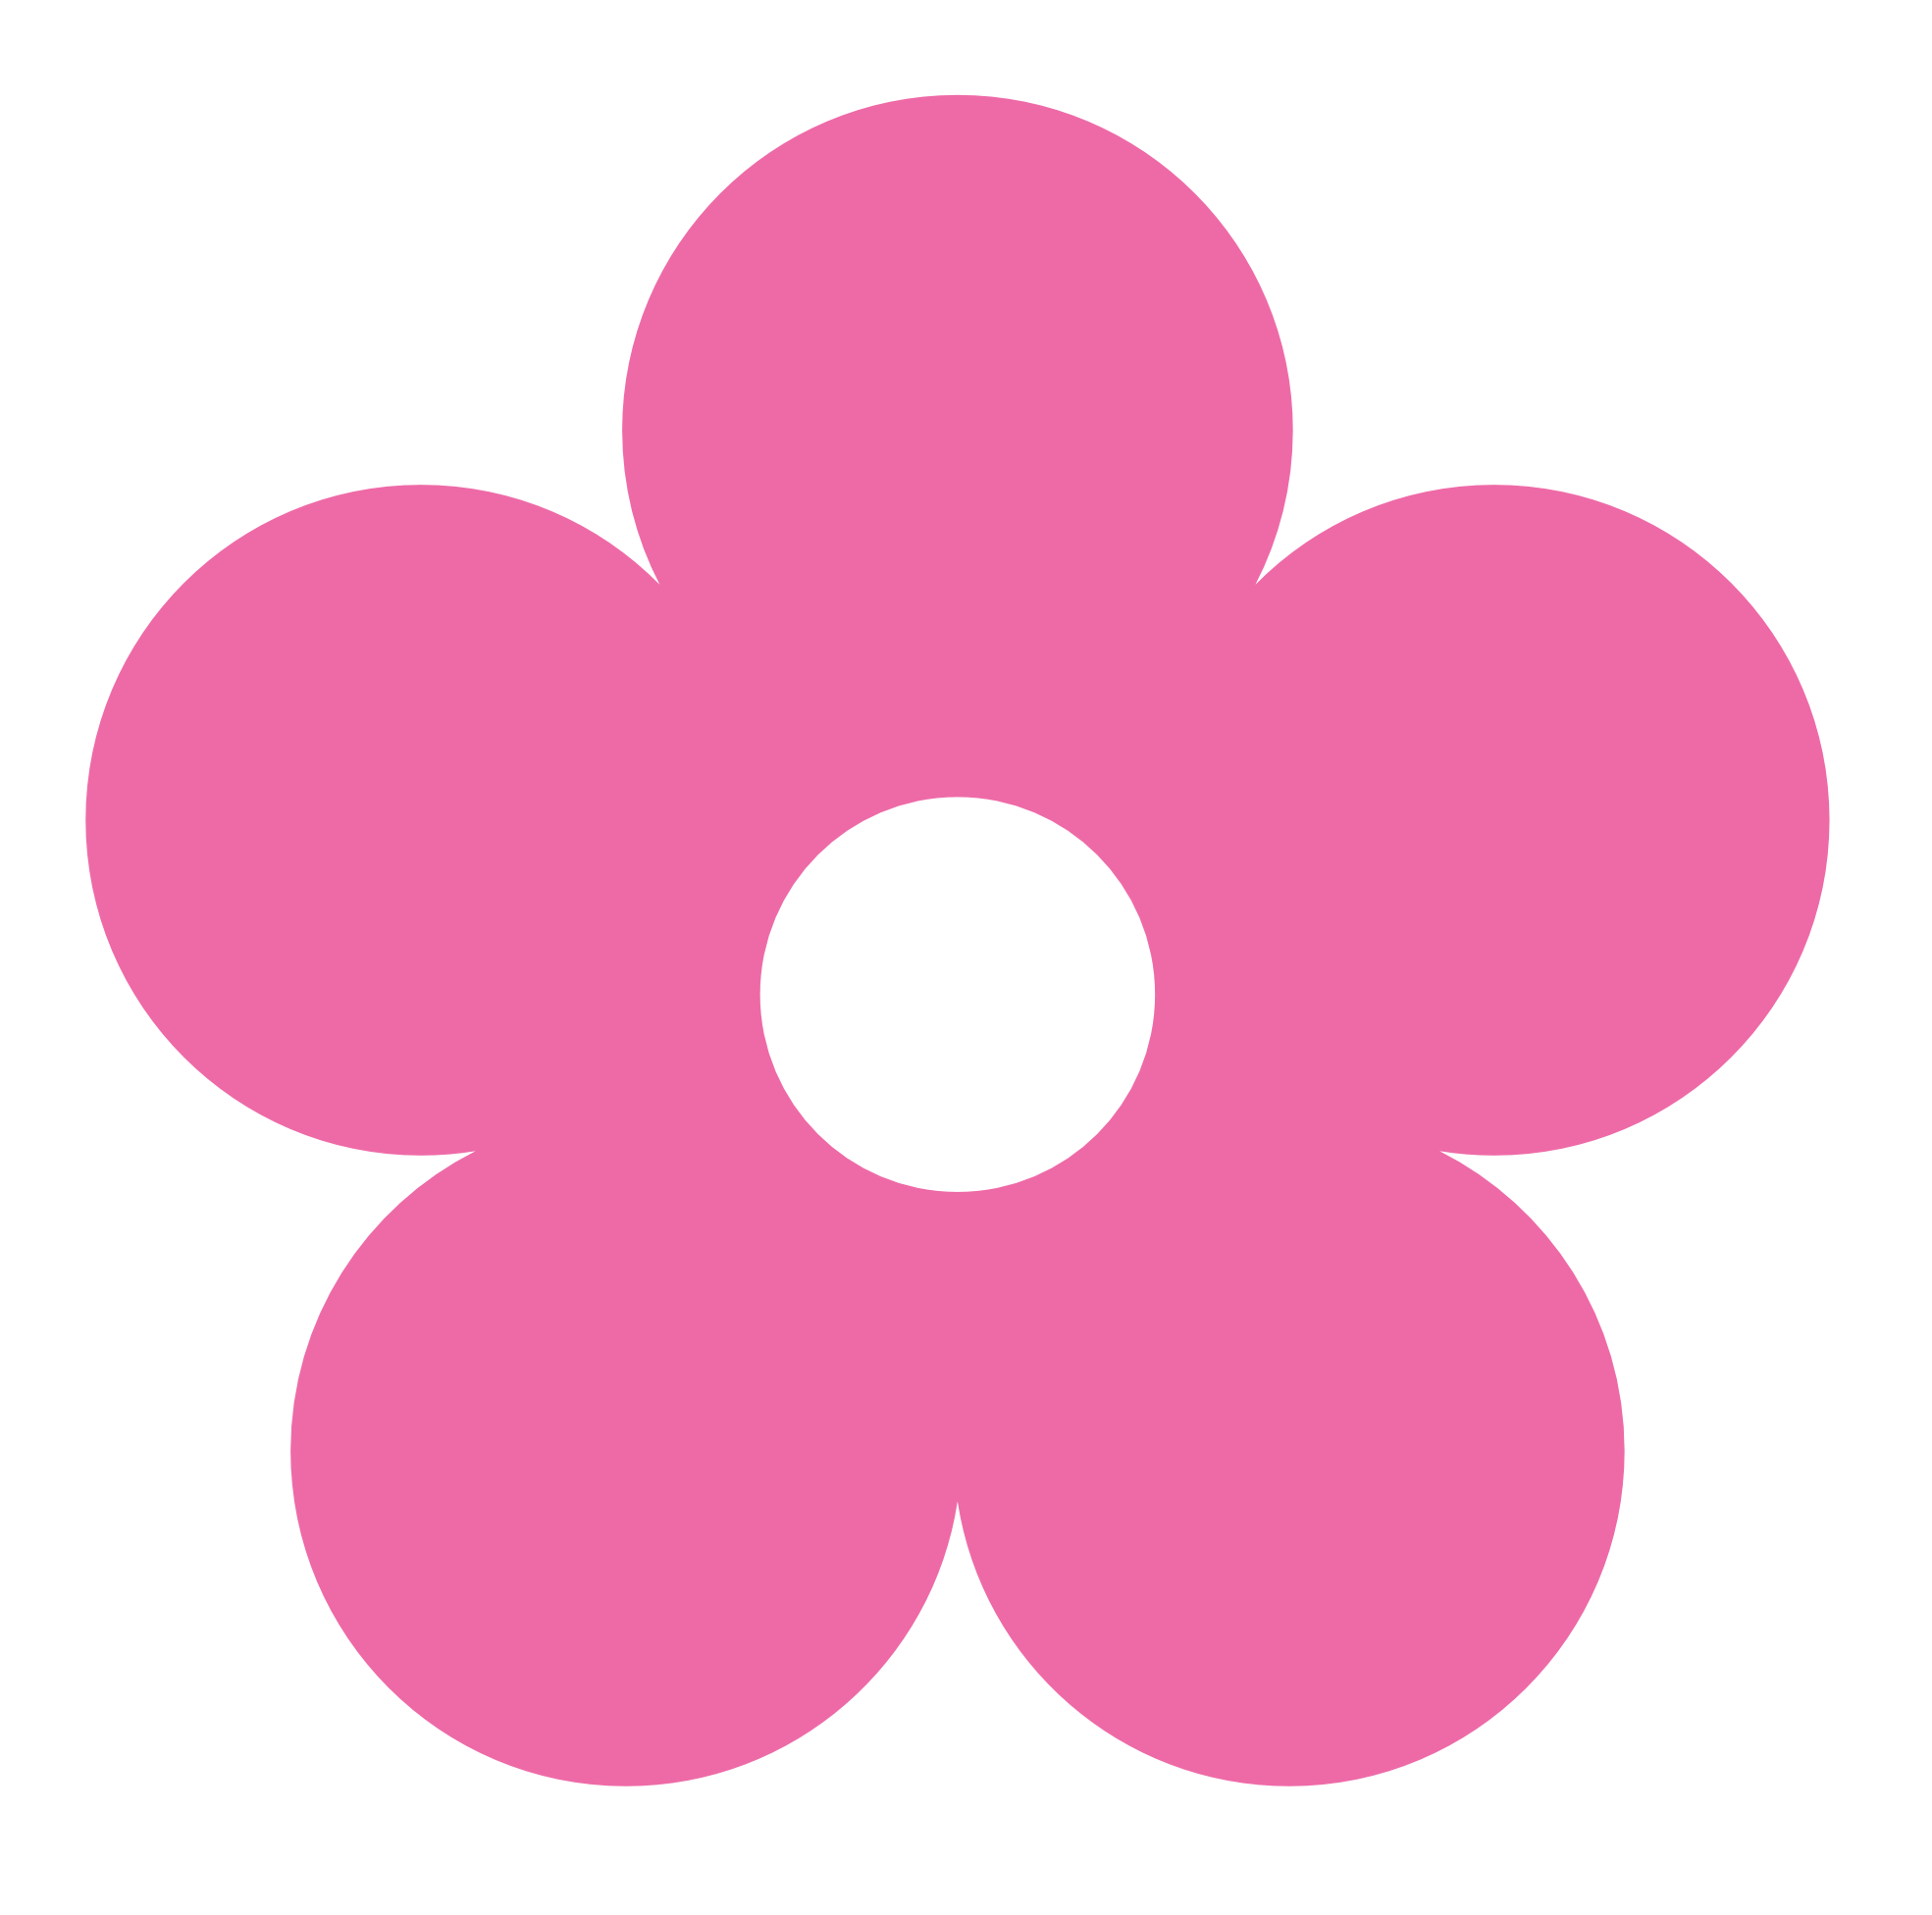 Hot pink flower clipart